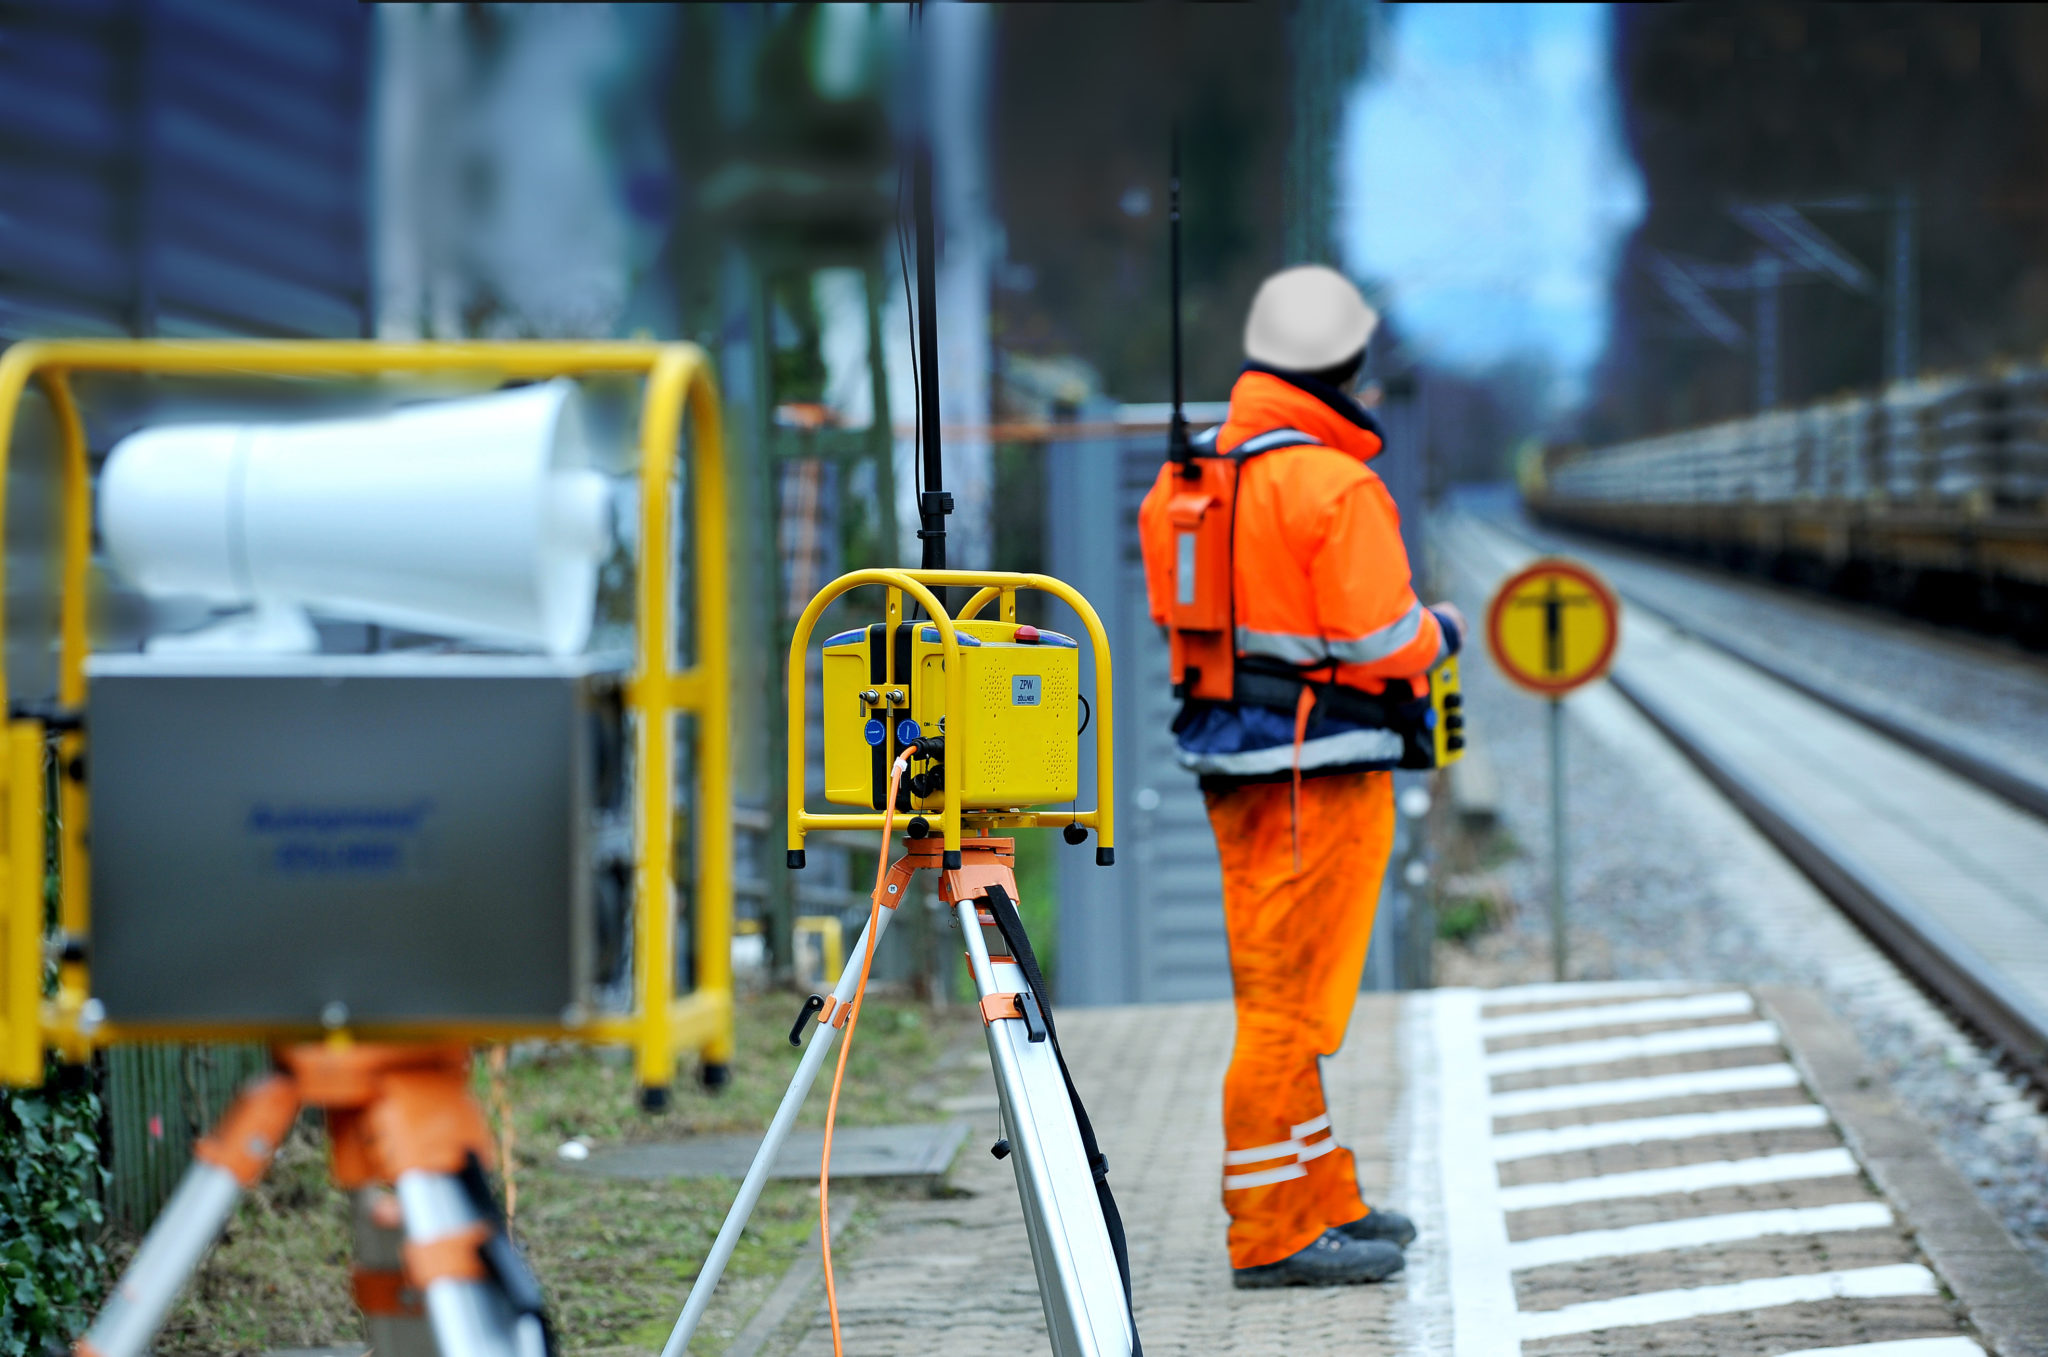 Zöllner automatic track warning system: Look-out with mobile ZFS and warning devices ZPW and WGH